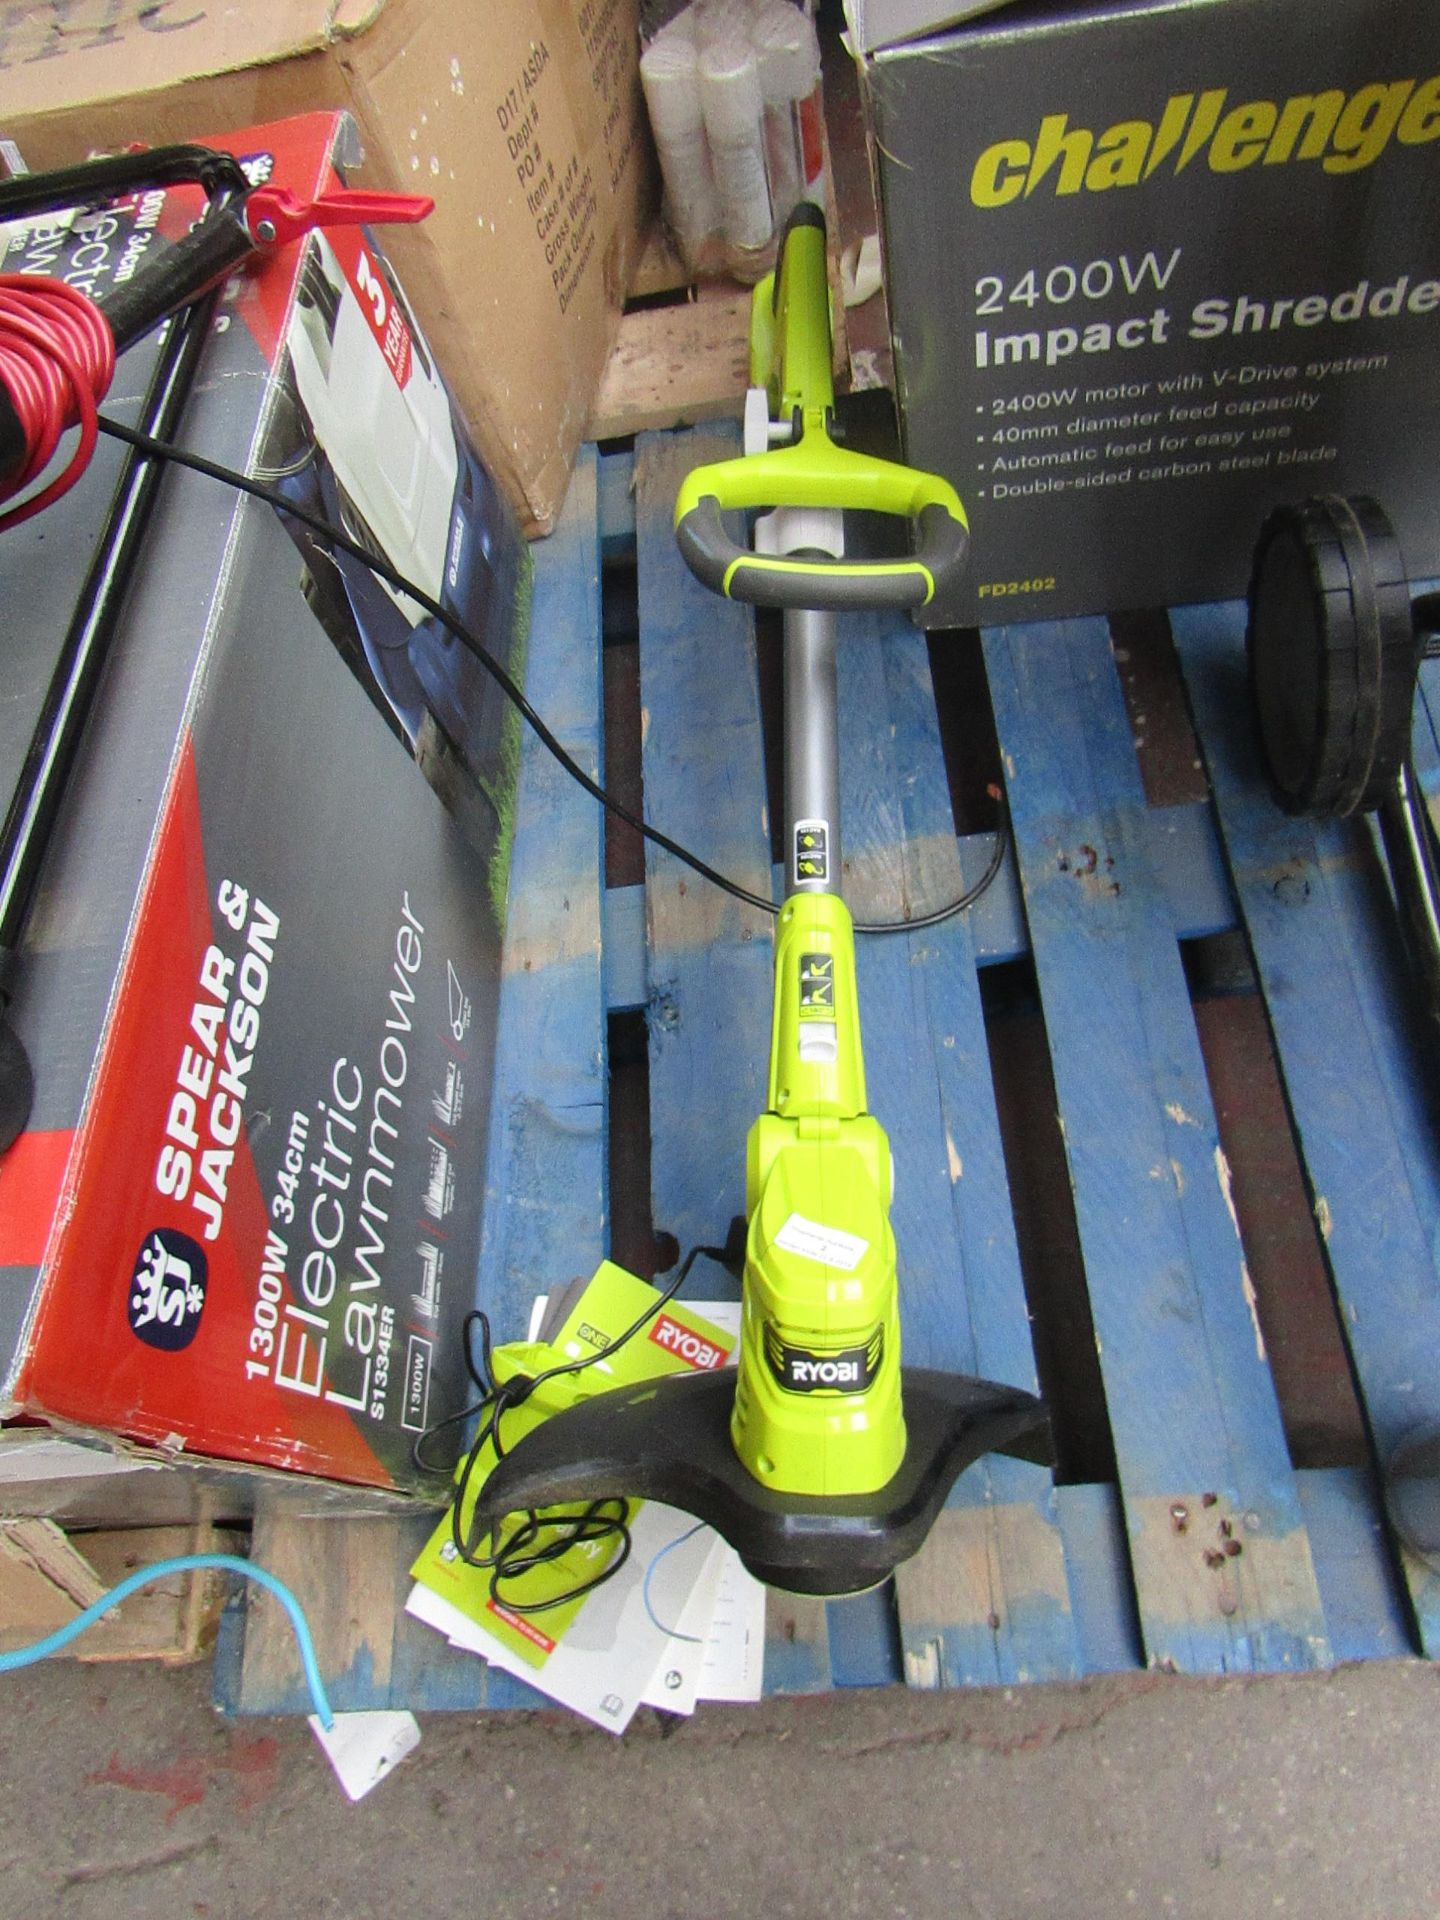 Lotto 2 - Ryobi one+ cordless grass trimmer, unable to check as no battery but does come with charger and